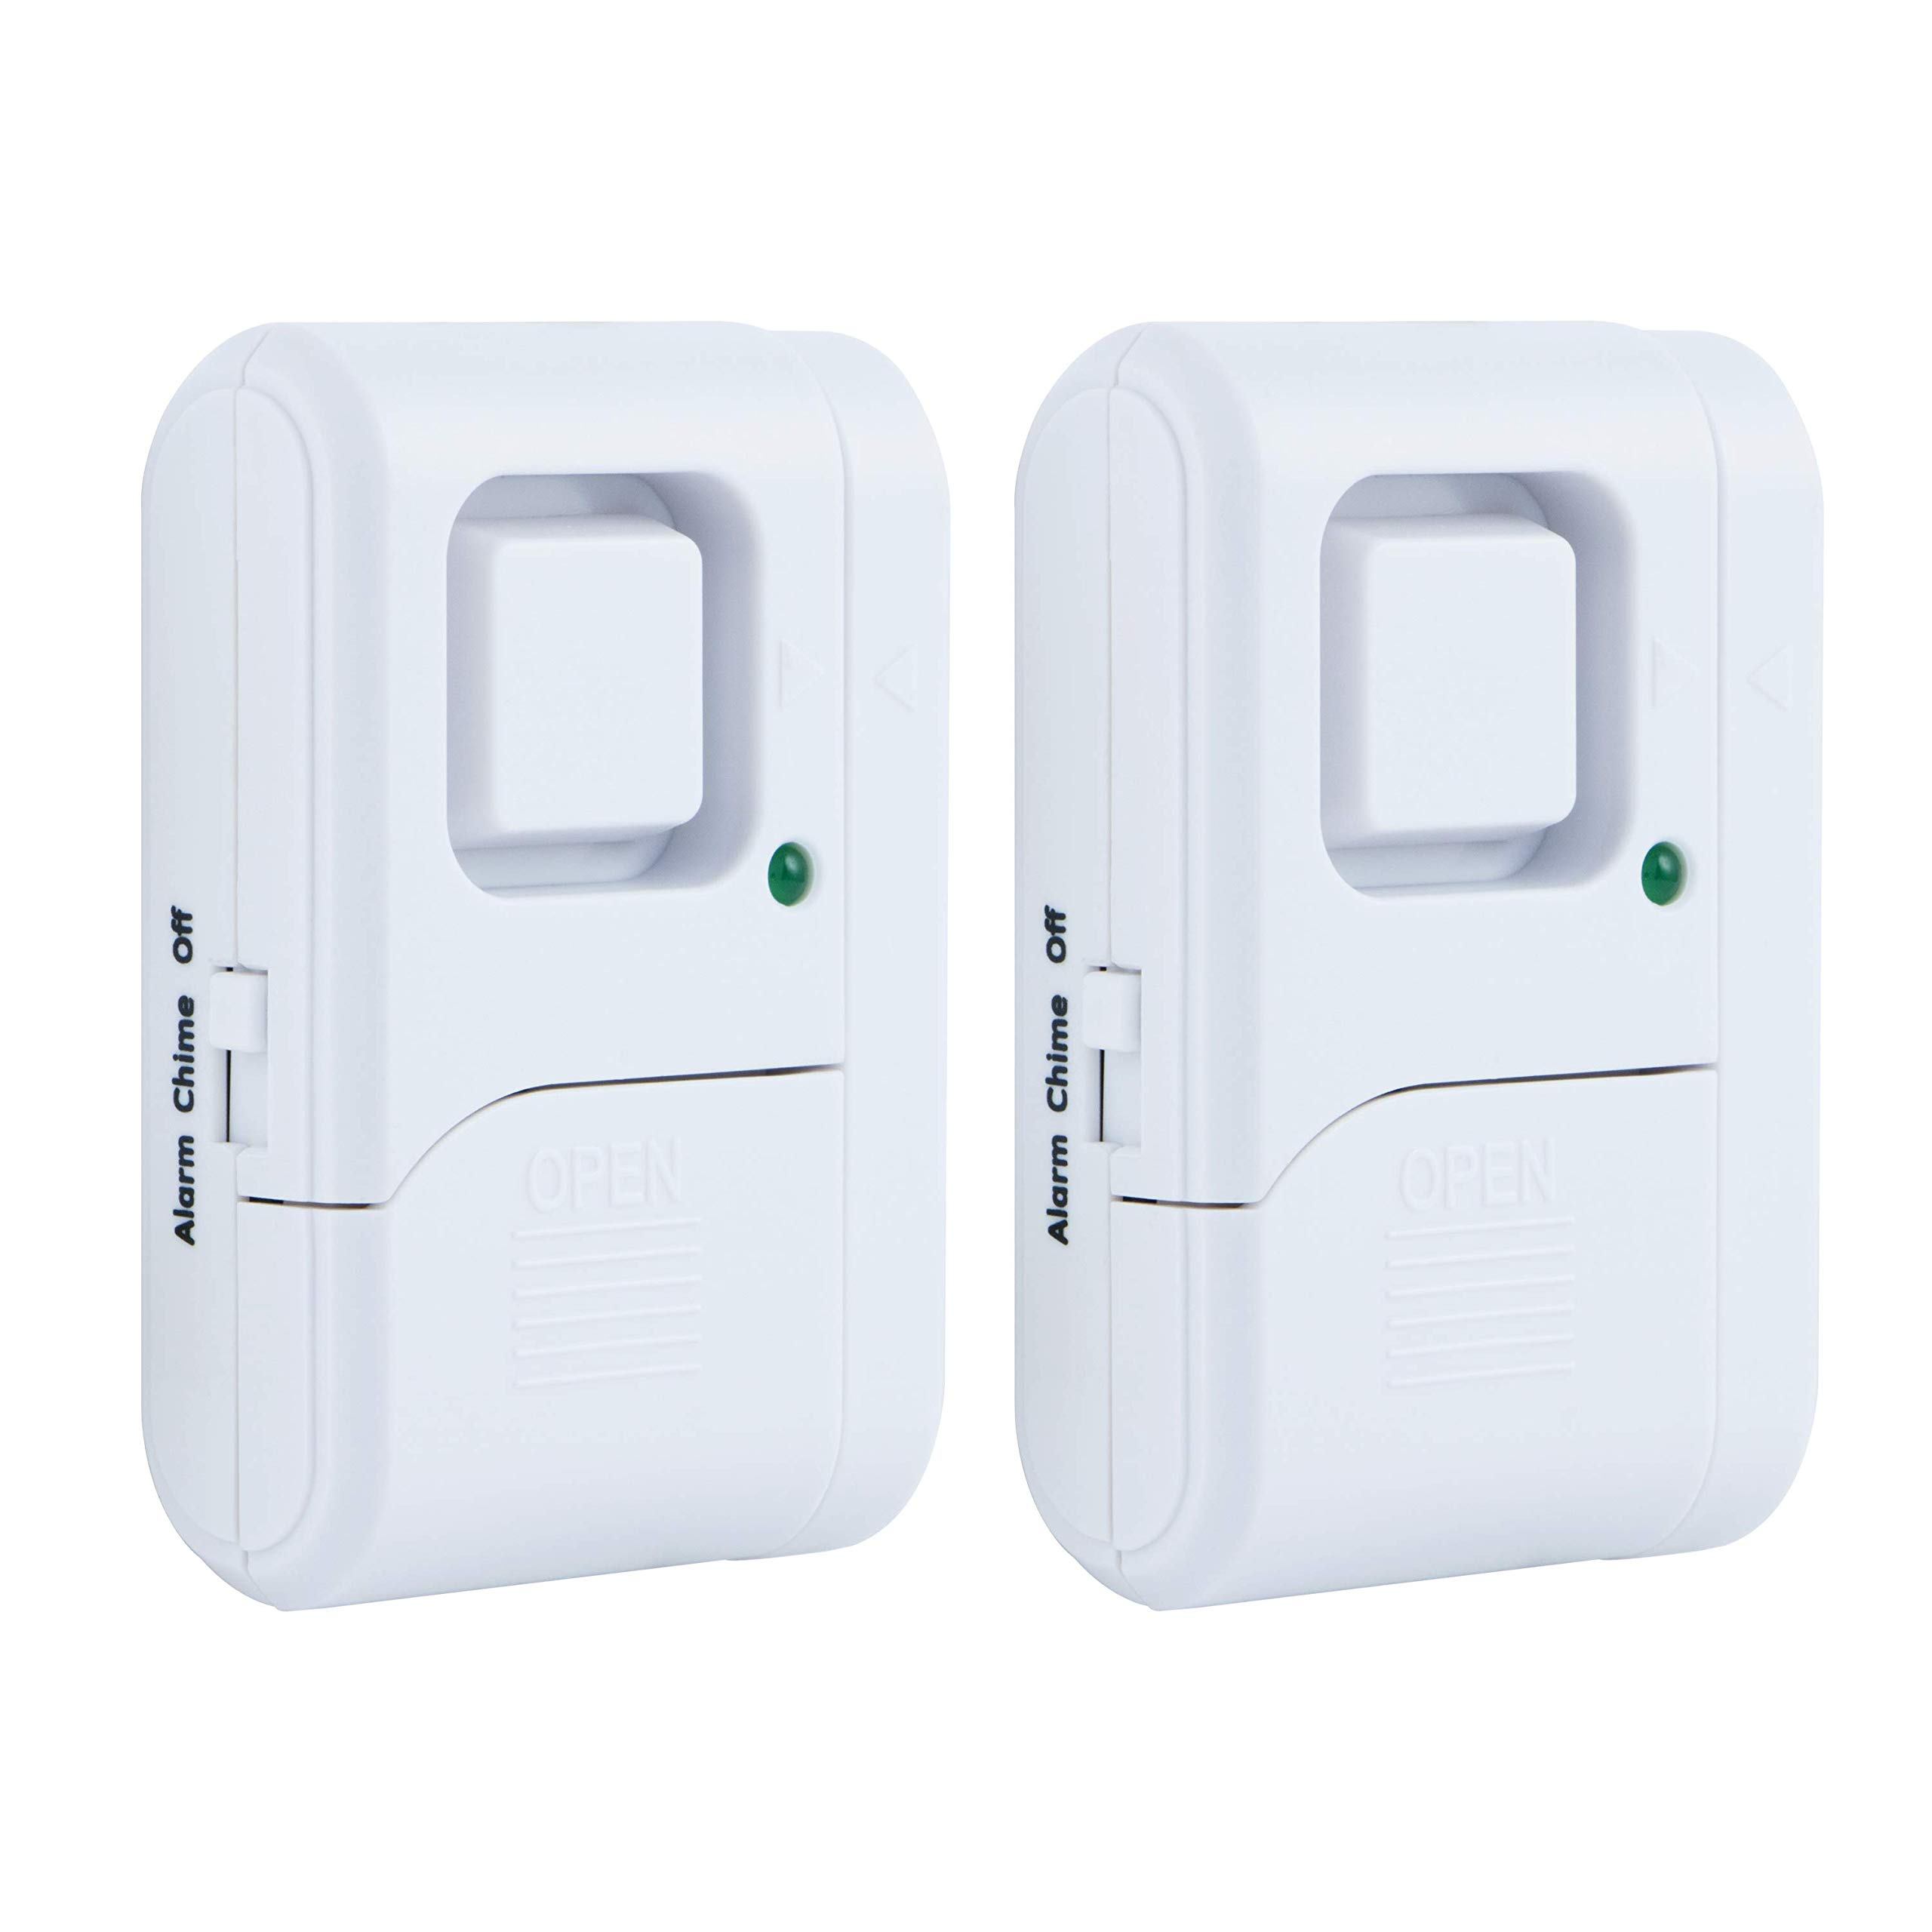 GE Personal Security Window/Door Alarm, 2-Pack, DIY Home Protection, Burglar Alert, Wireless Alarm, Off/Chime/Alarm, Easy Installation, Ideal for Home, Garage, Apartment, Dorm, RV and Office, 45115 by GE